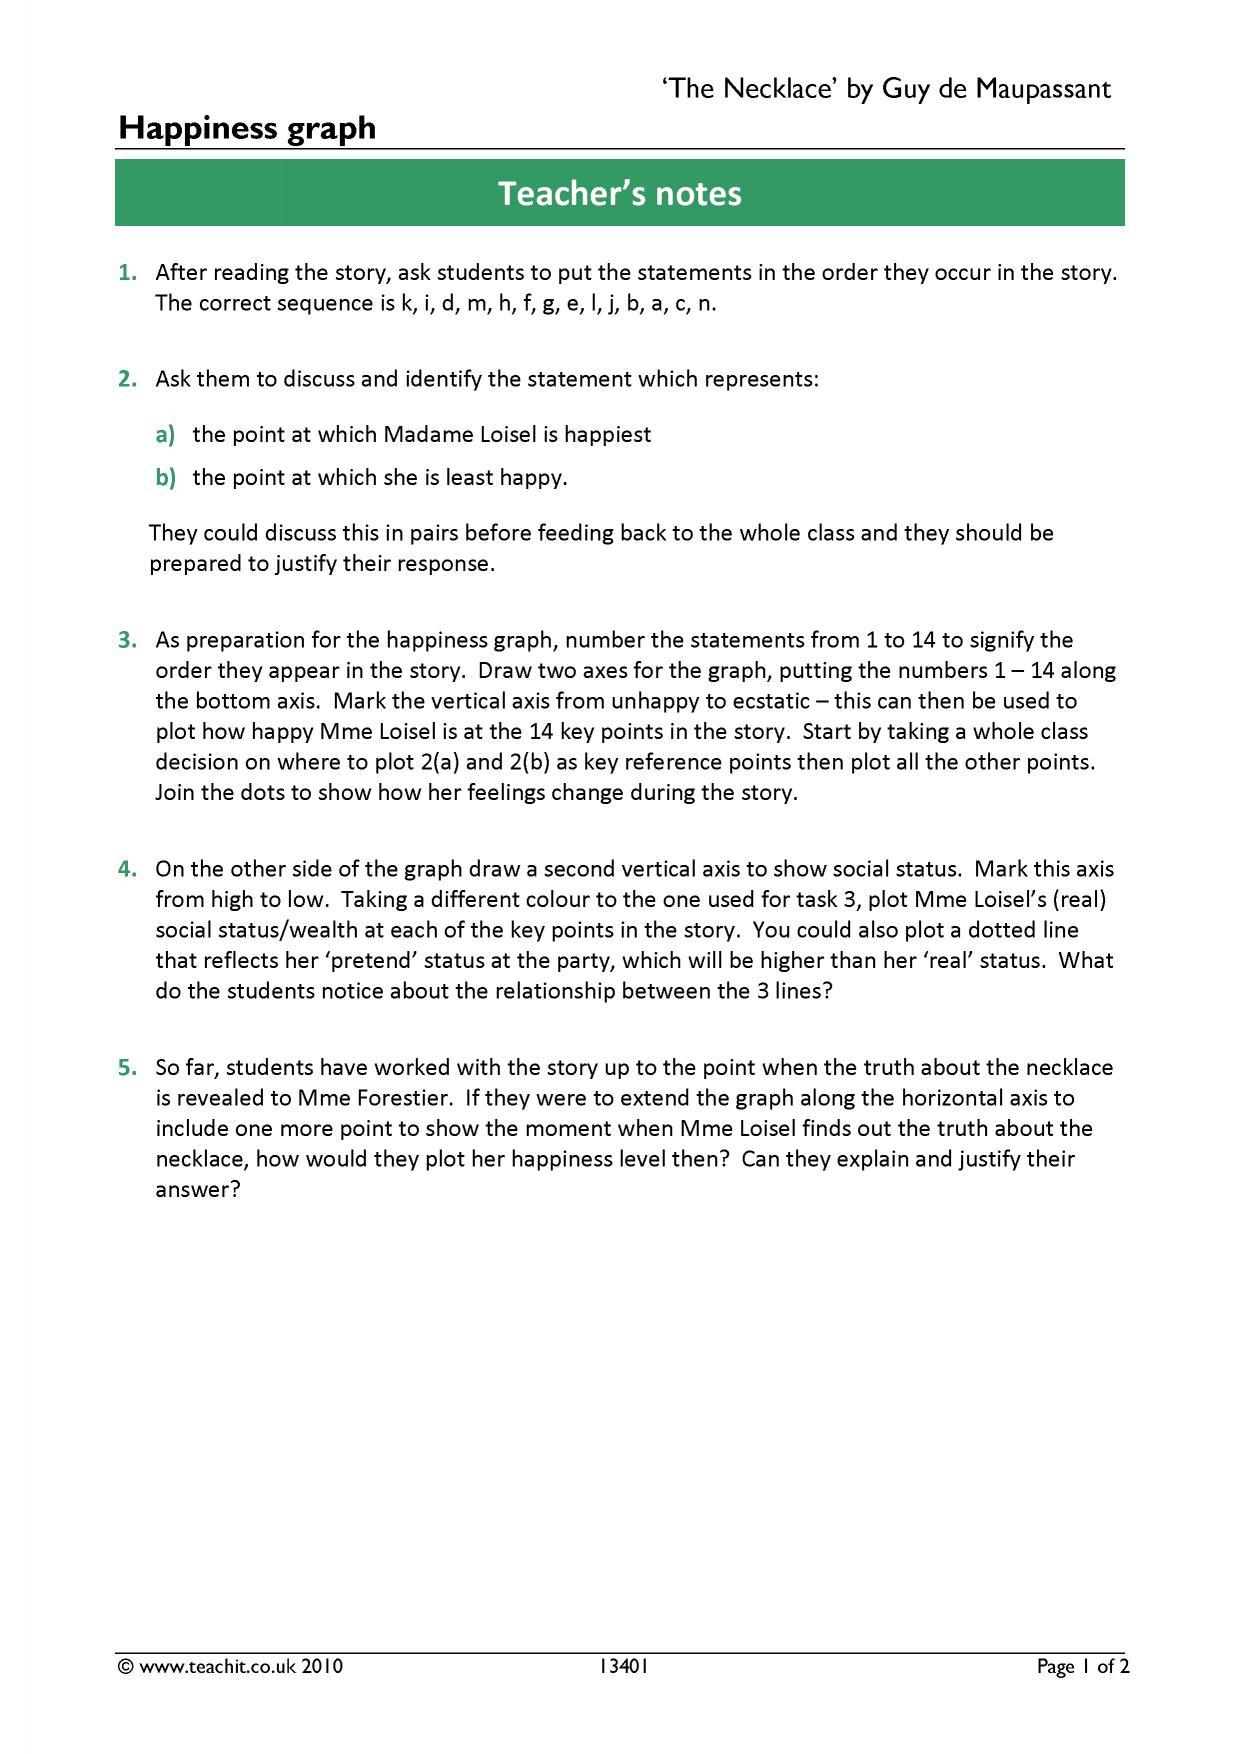 edexcel anthology 2011 for igcse Anthology study guide for a level edexcel rs paper 3: new testament studies 16/01/2018 ~ zigzag education comprehensive guide to the new anthology texts with commentary, context and activities.